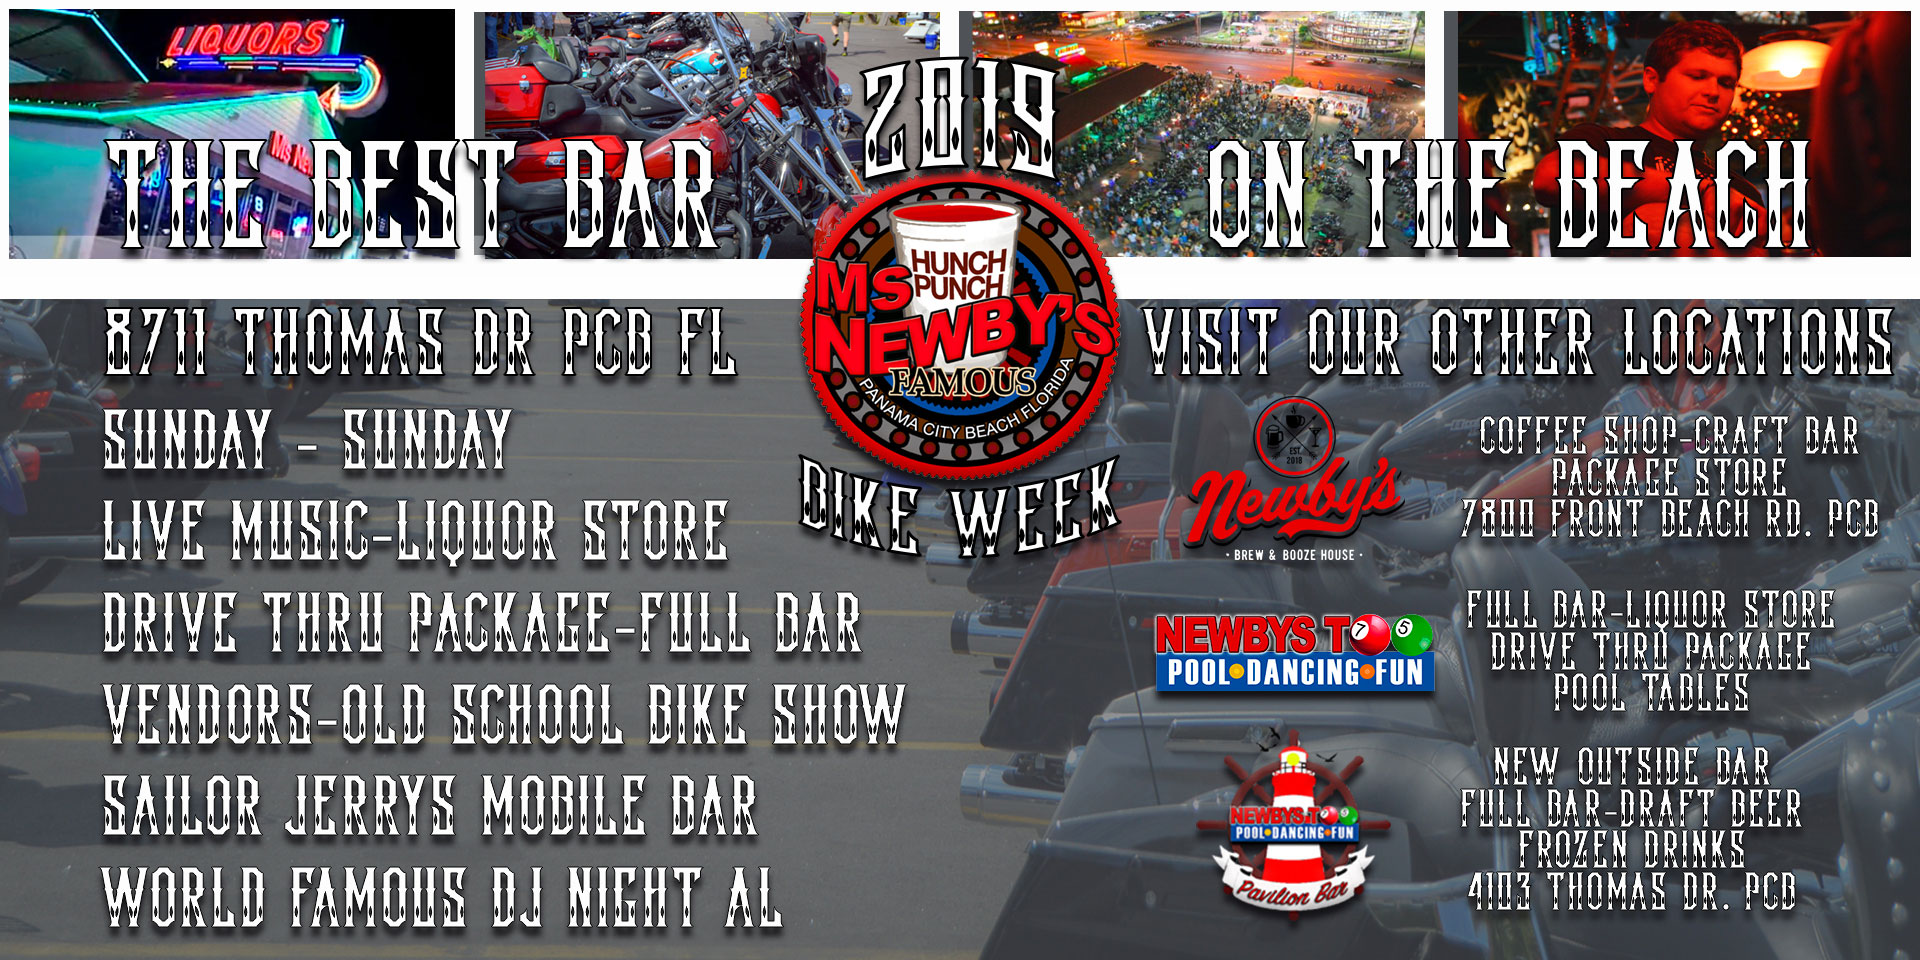 Spring 2019 Panama City Beach Motorcycle Rally® | Ms. Newby's Bike Week